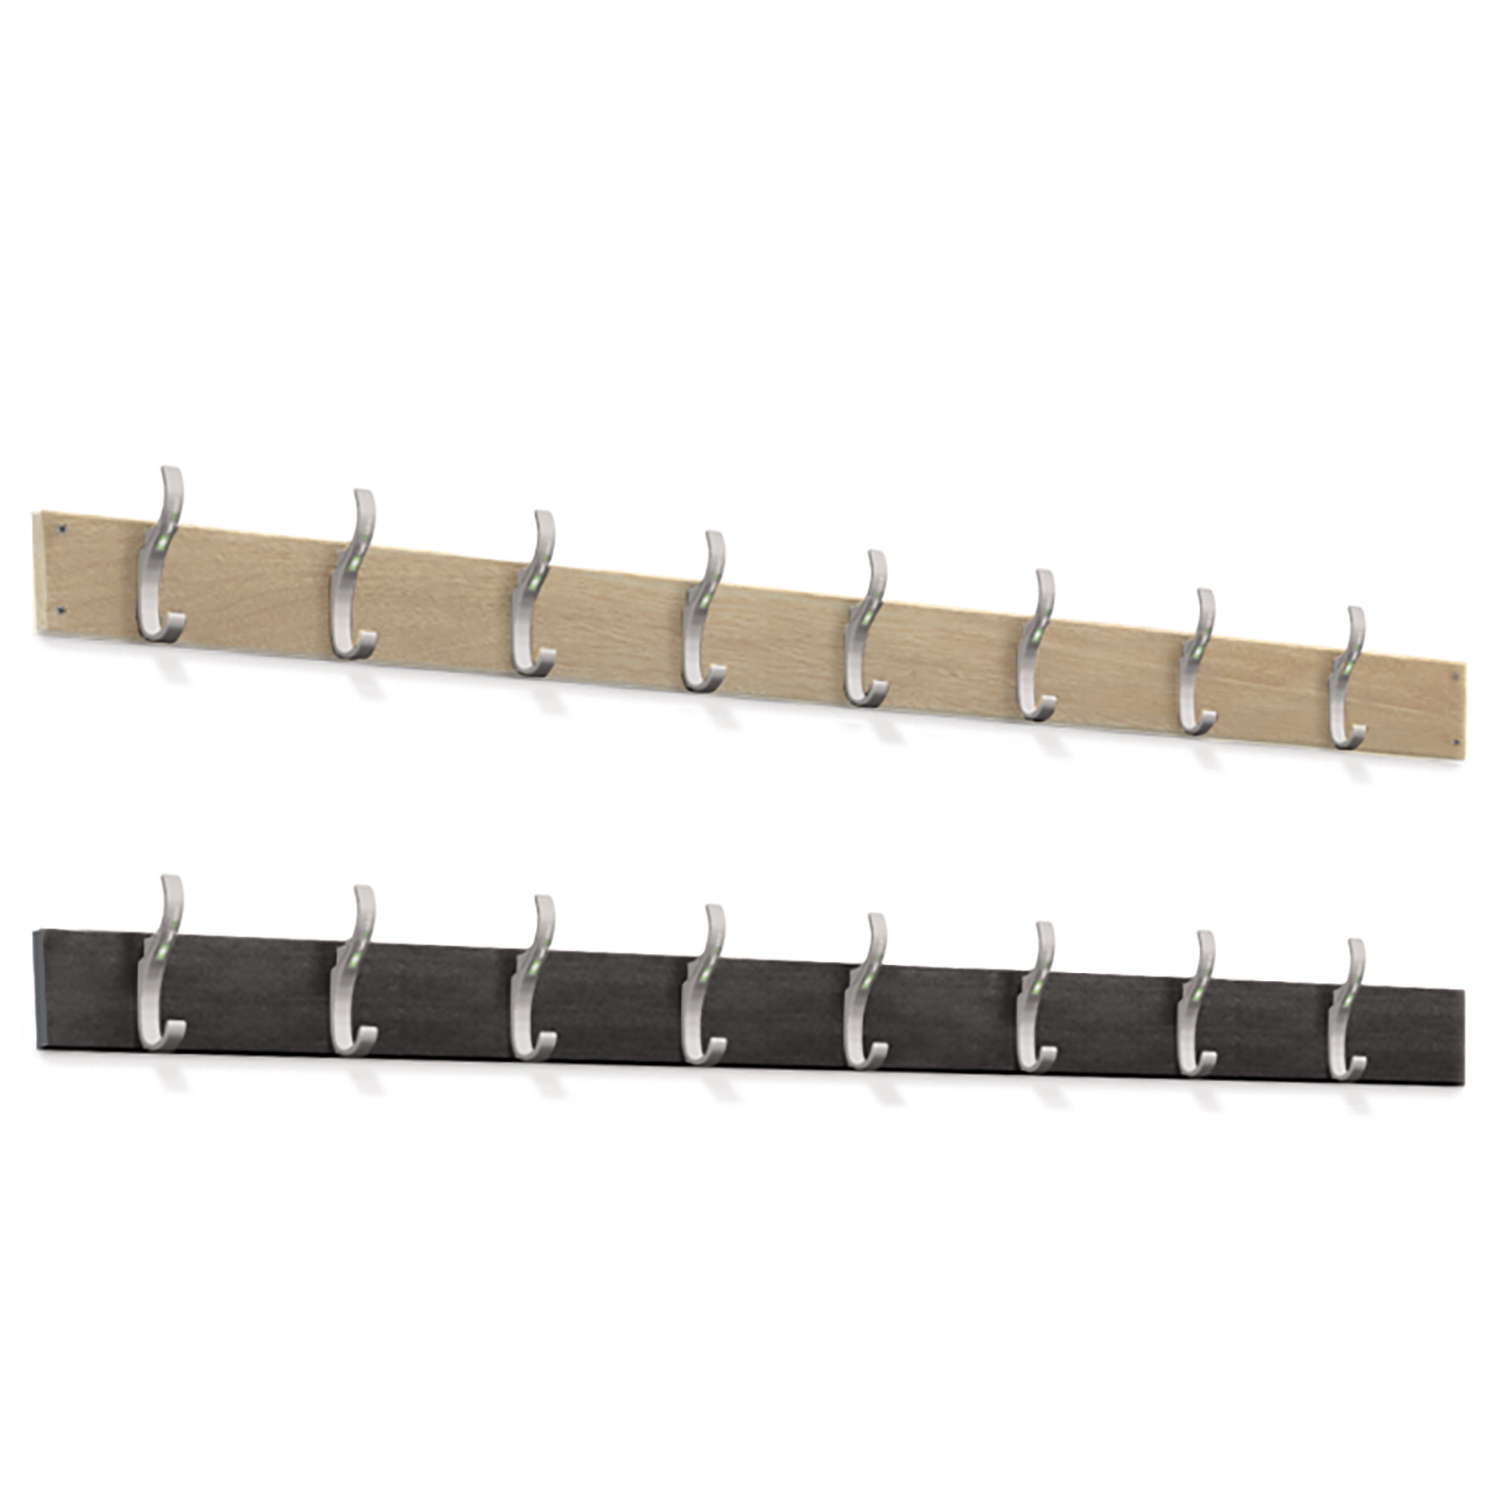 Probe cloakroom wall hook strip